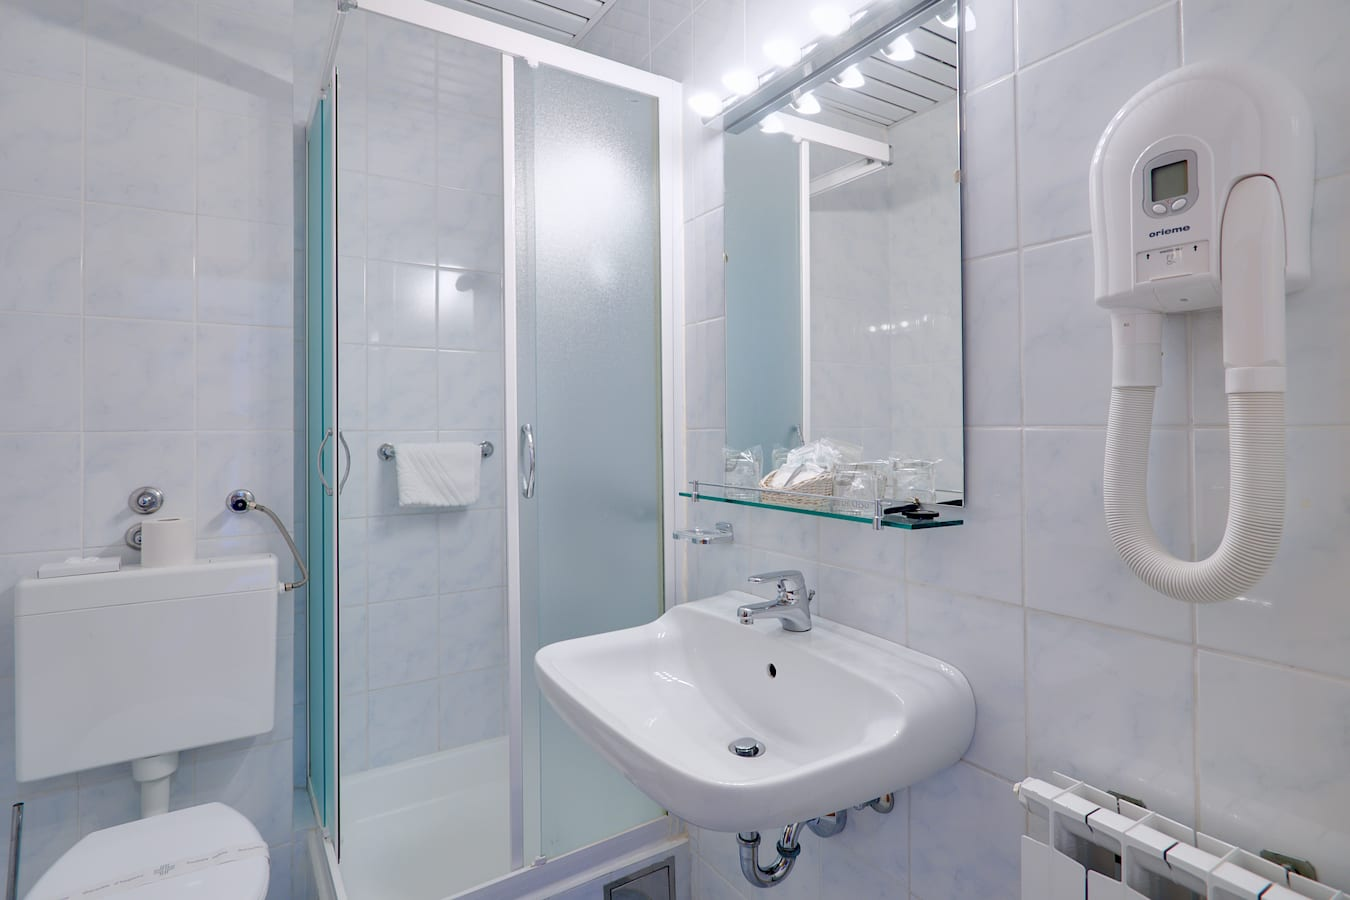 komodor-hotel-rooms-bathroom-shower.jpg